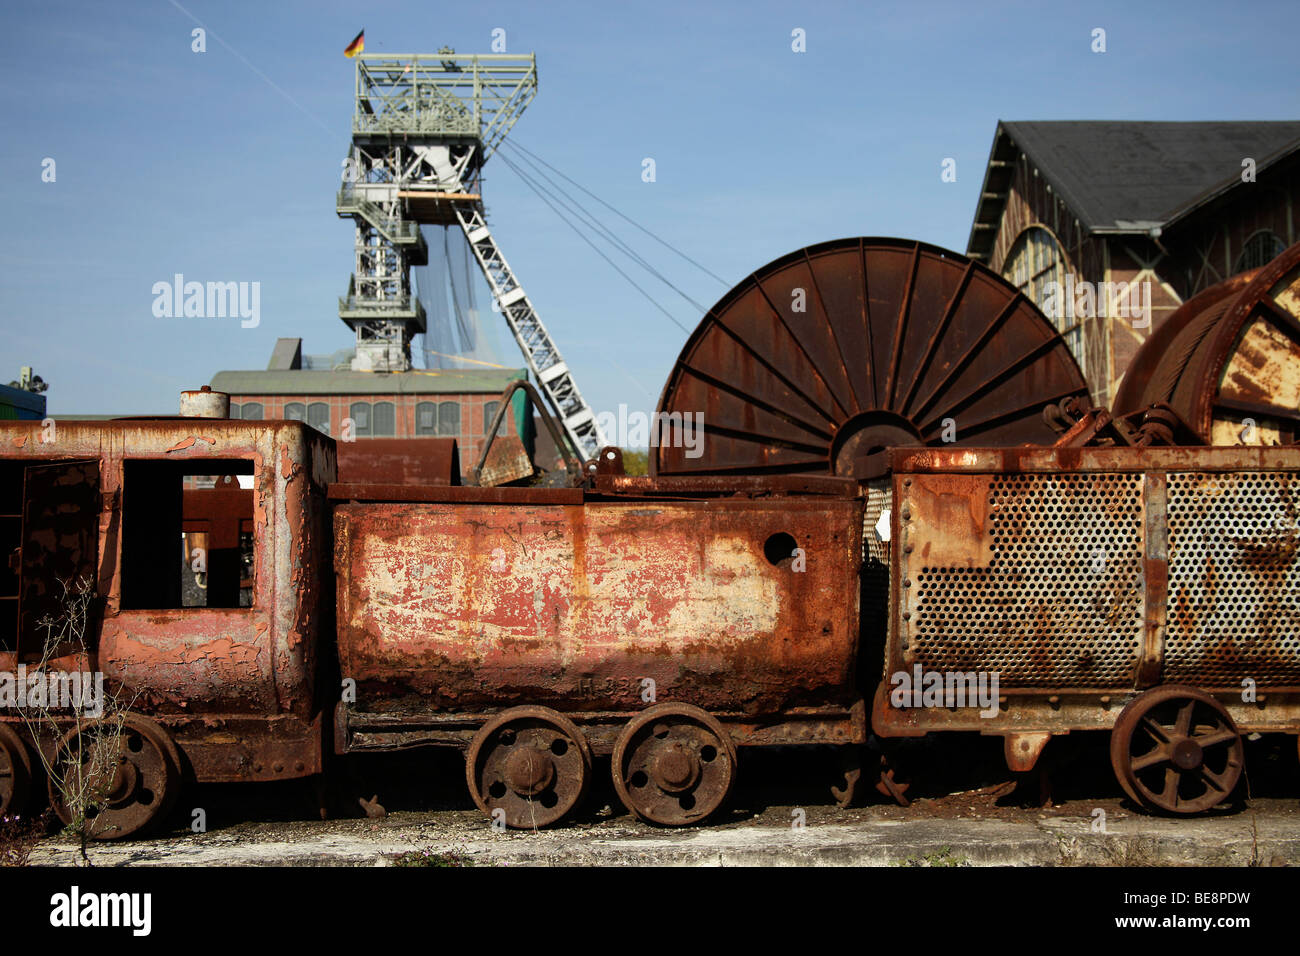 Old coal train of the Zeche Zollern mine in Dortmund, part of the Route of Industrial Culture through the Ruhr area - Stock Image